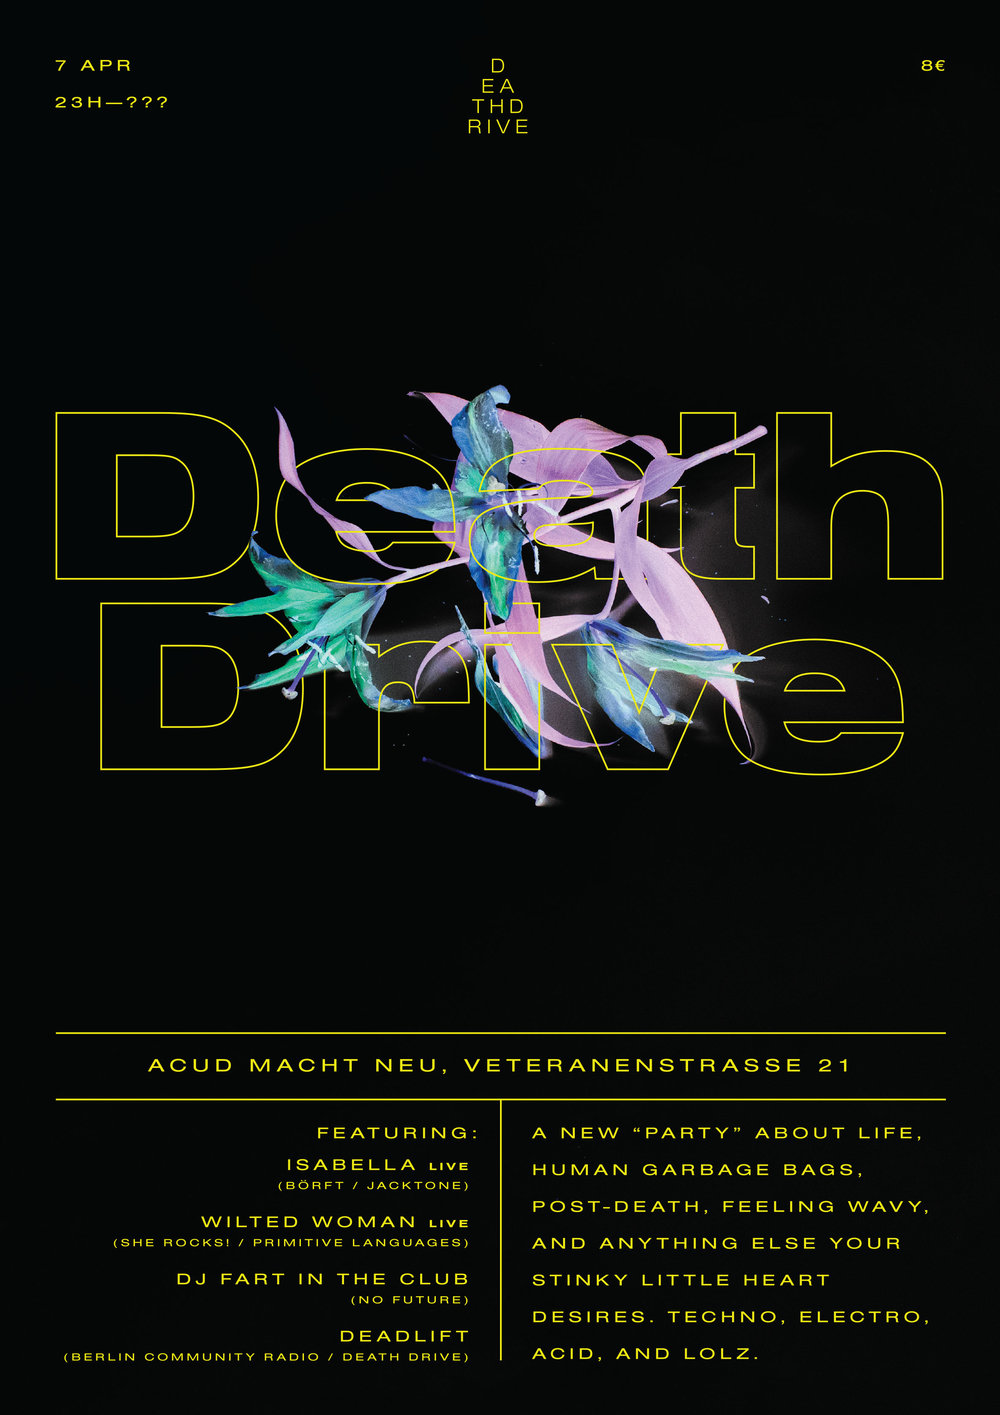 Death Drive: A party series by  Deadlift